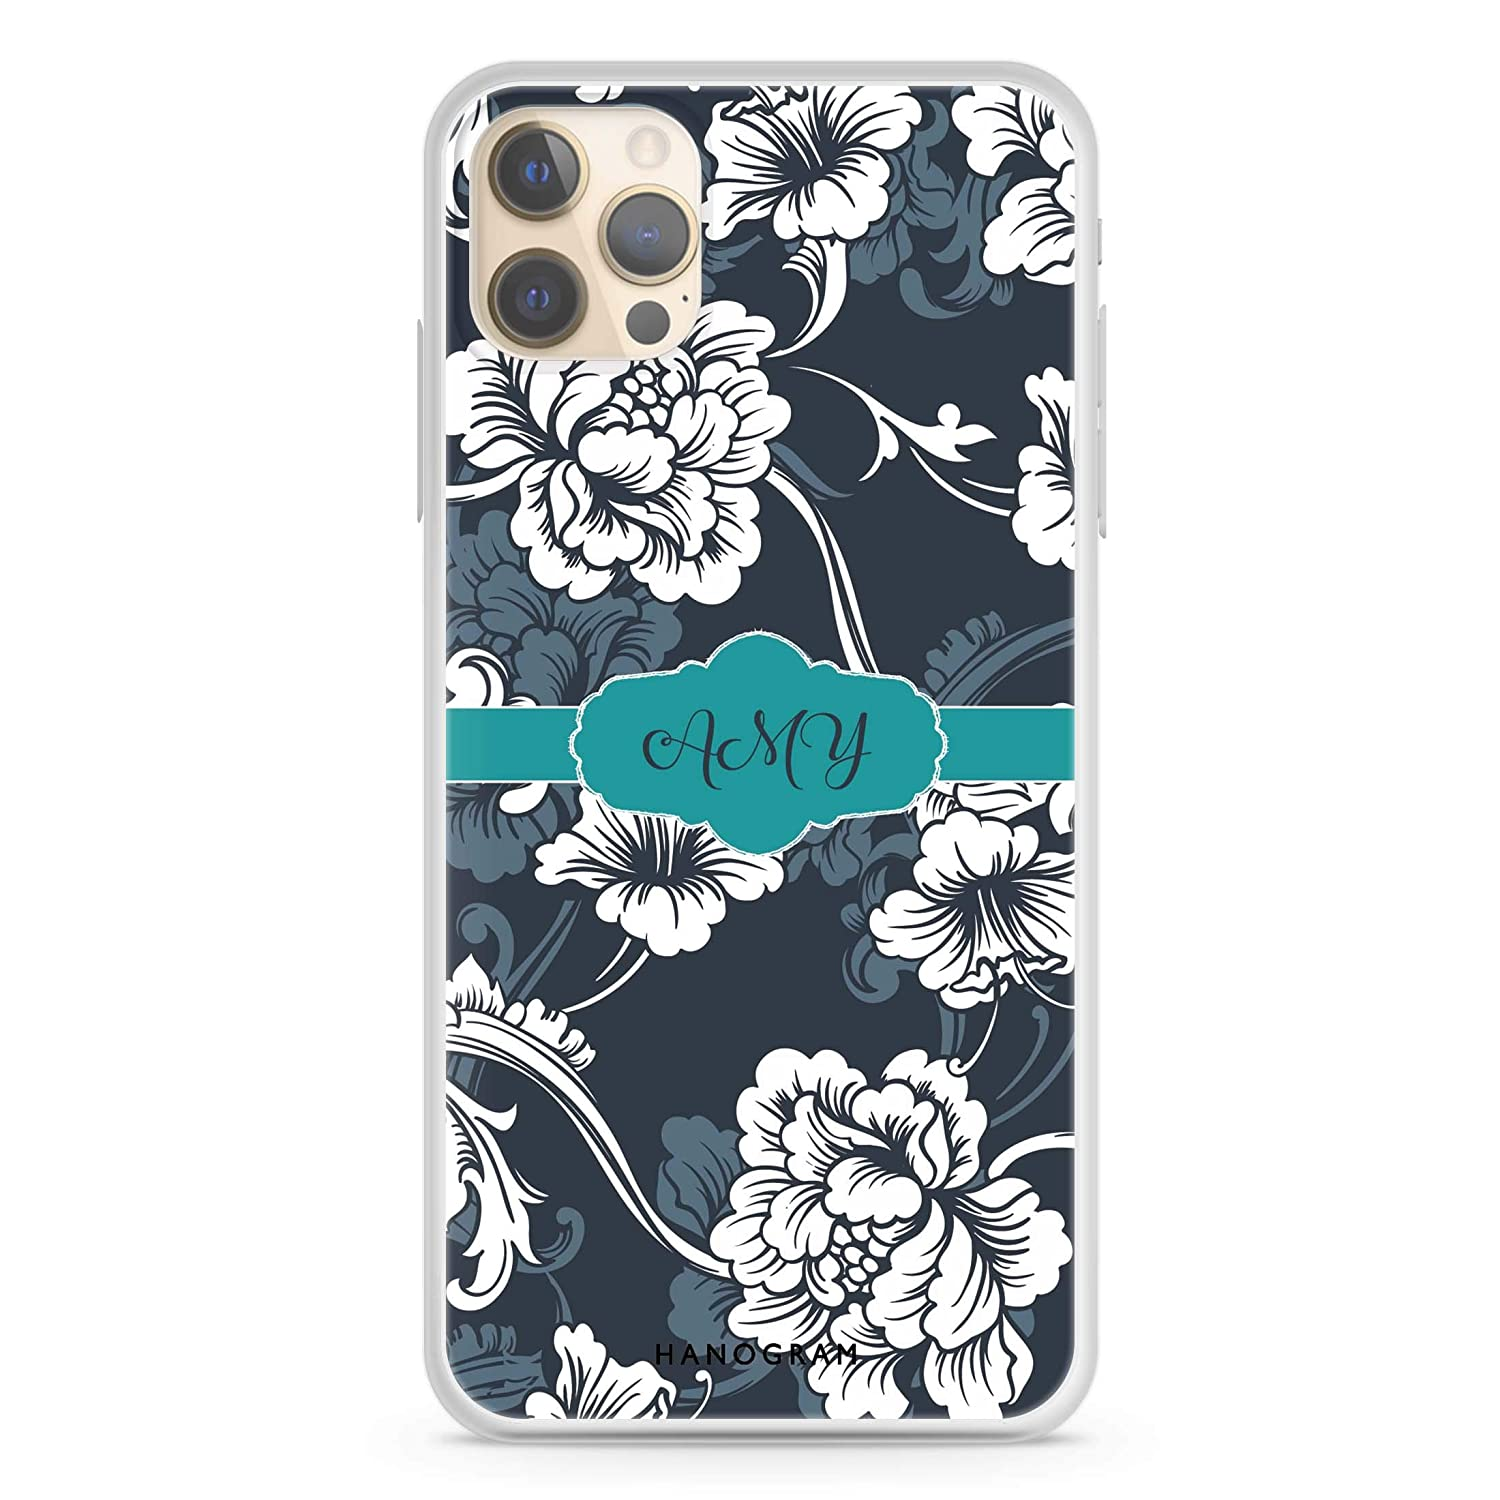 Ceramic Trust Limited time trial price Art iPhone 12 Pro Soft Max Case Clear